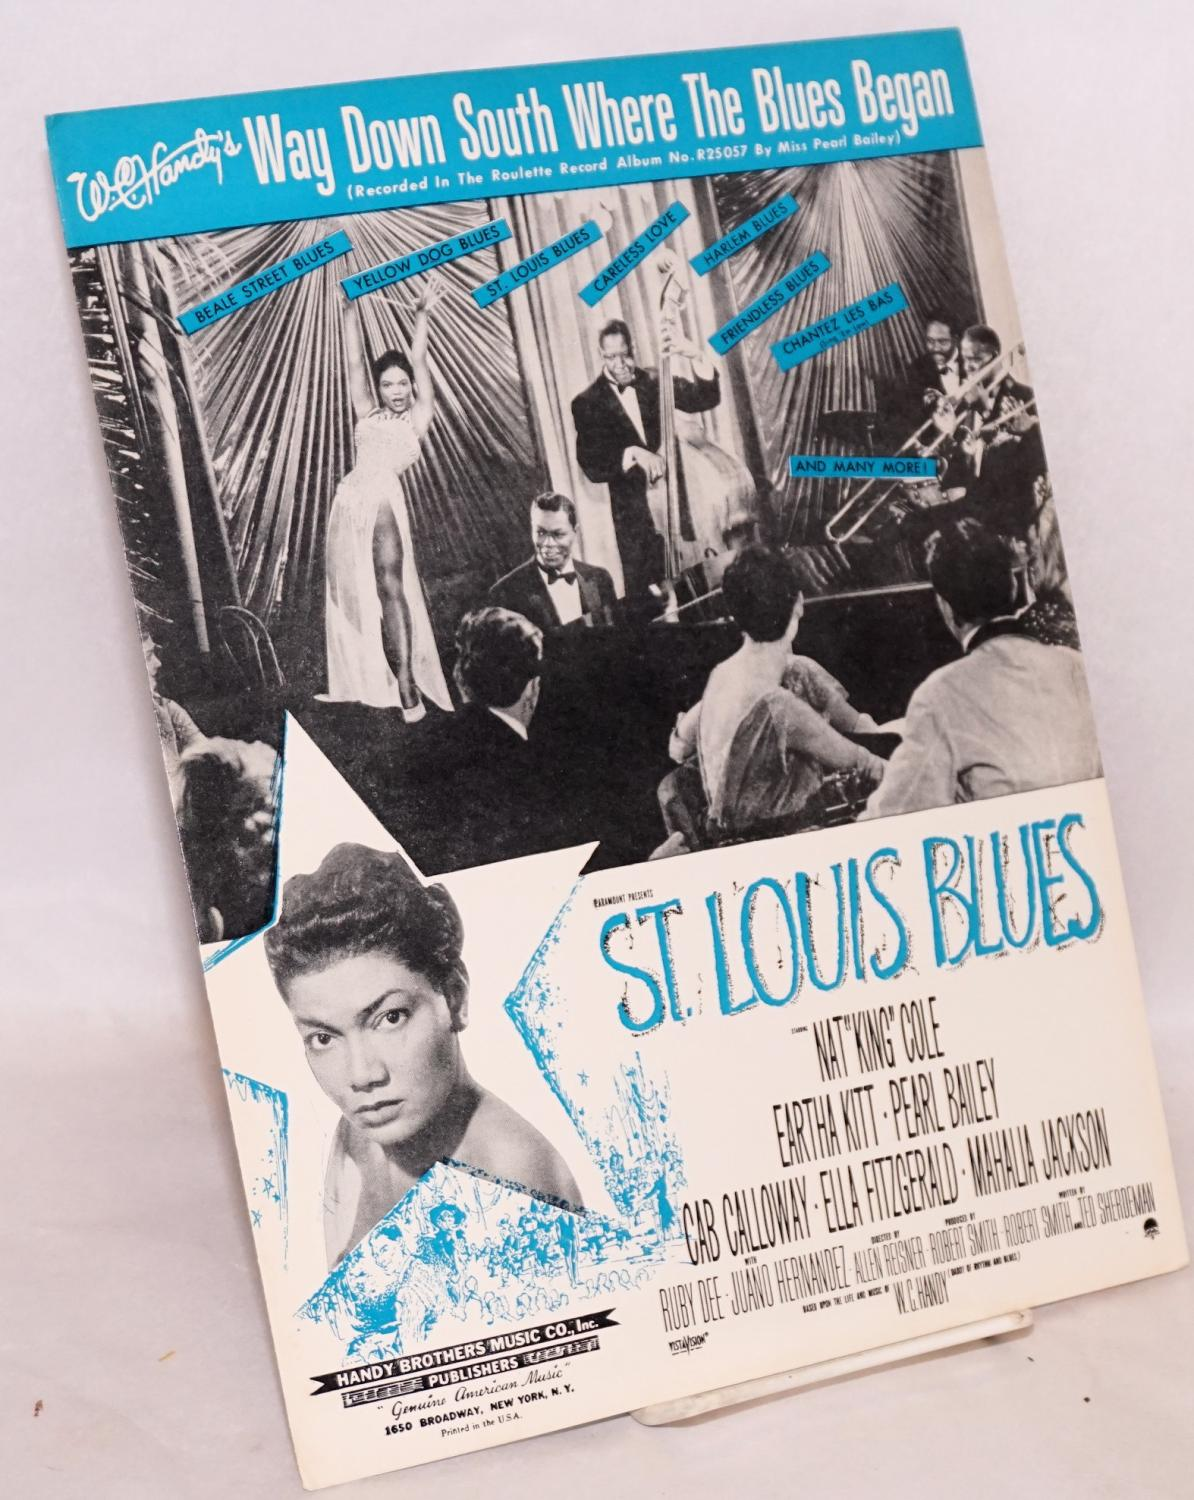 W. C. Handy's Way down south where the blues began (recorded in the Roulette Record Album no. ...